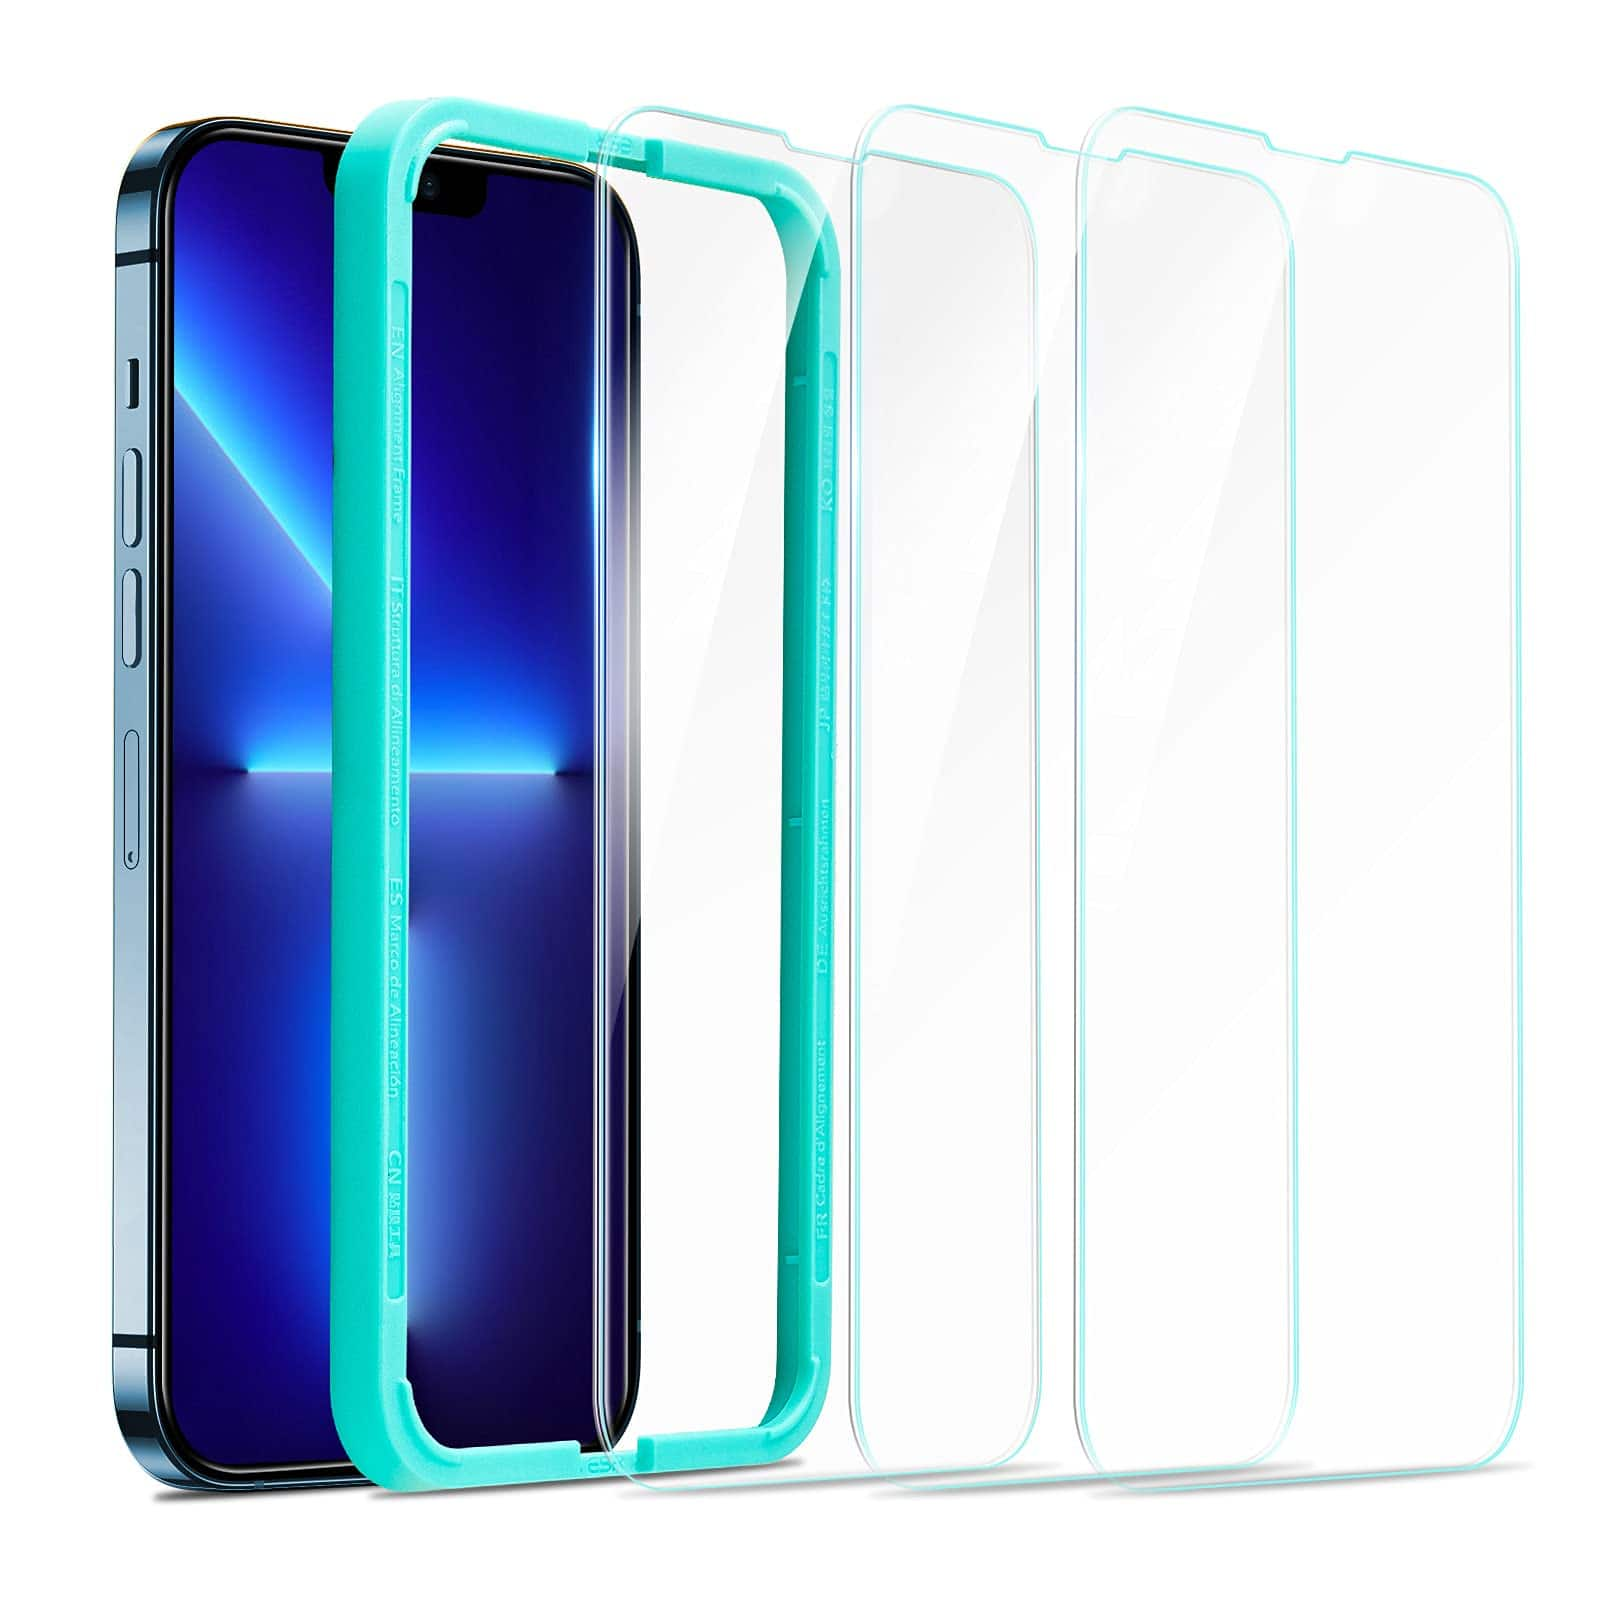 ESR Pre-order Discount for iPhone 13, 13 Pro, Pro Max and Mini Air Armor Case and Screen Protector $7.79+